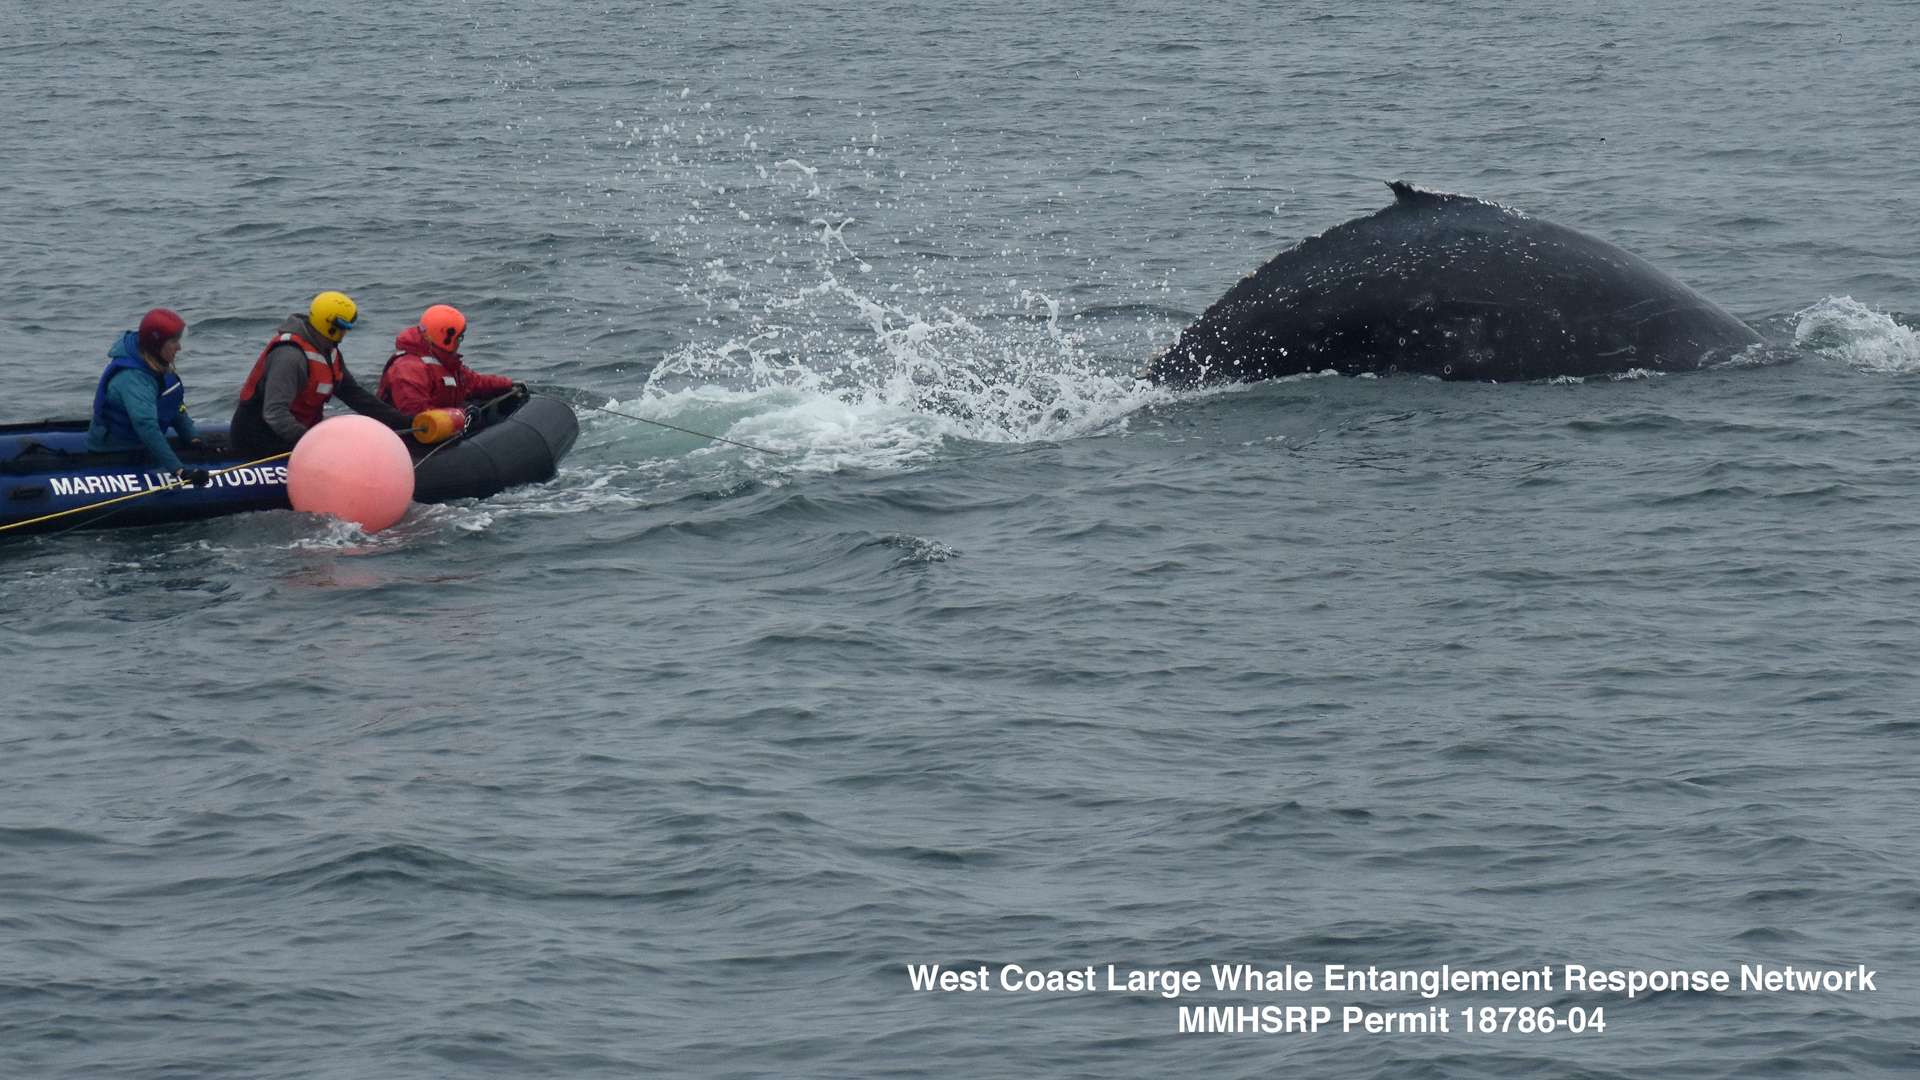 A young humpback whale that was entangled in fishing gear in Monterey Bay is freed by the Marine Life Studies Whale Entanglement Team on Dec. 13, 2019. (Credit: Marine Life Studies)